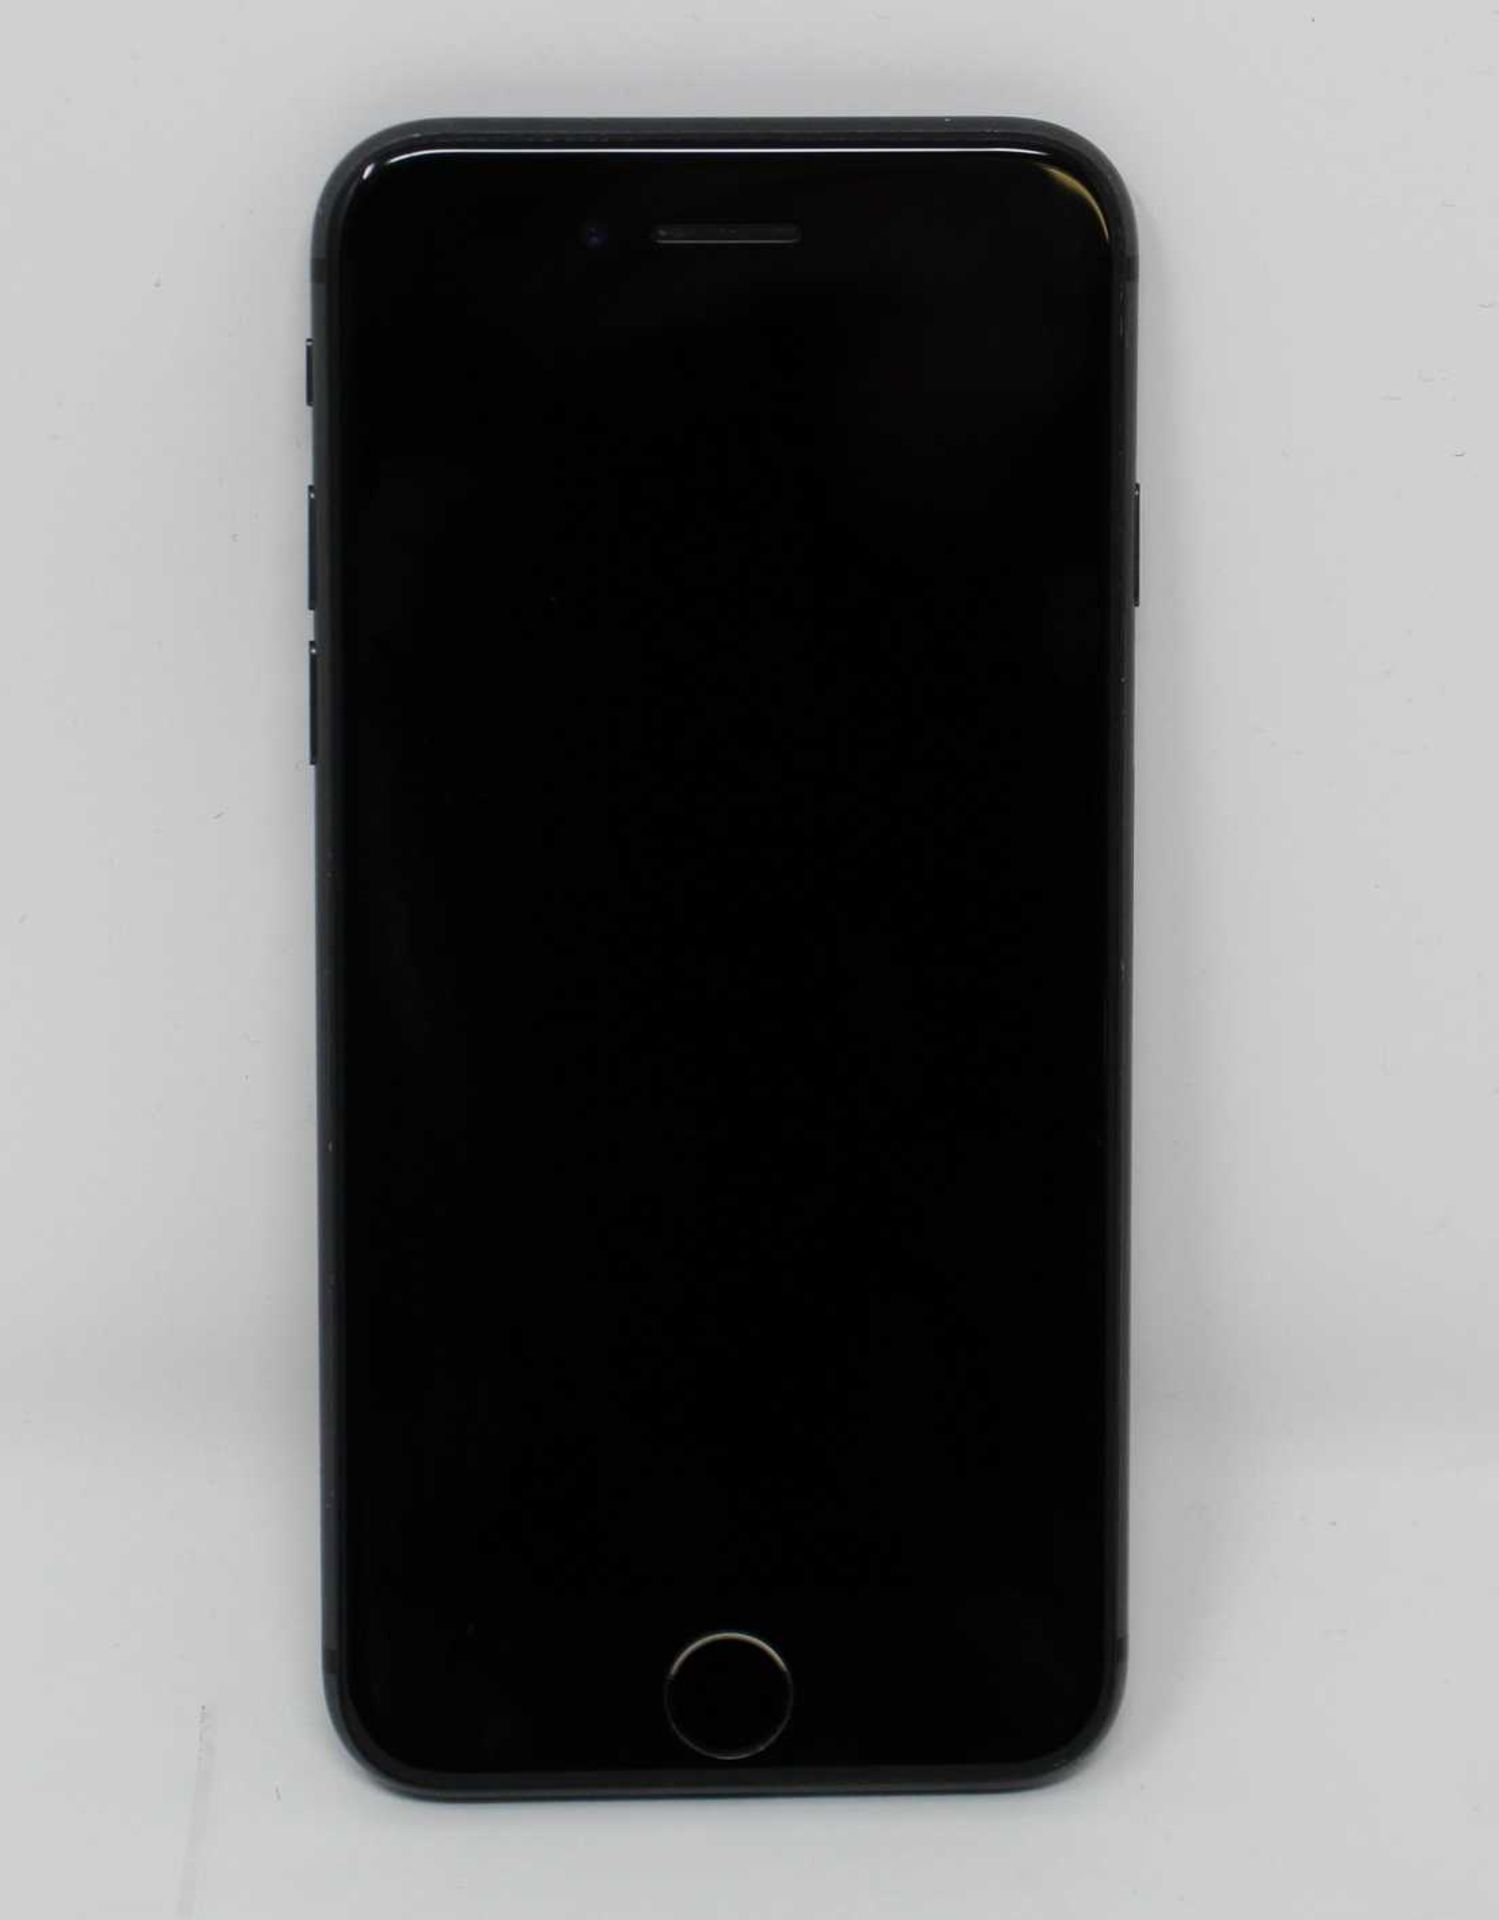 A pre-owned Apple iPhone 8 (AT&T/T-Mobile/Global/A1905) 64GB in Space Grey (iCloud activation clear, - Image 2 of 7